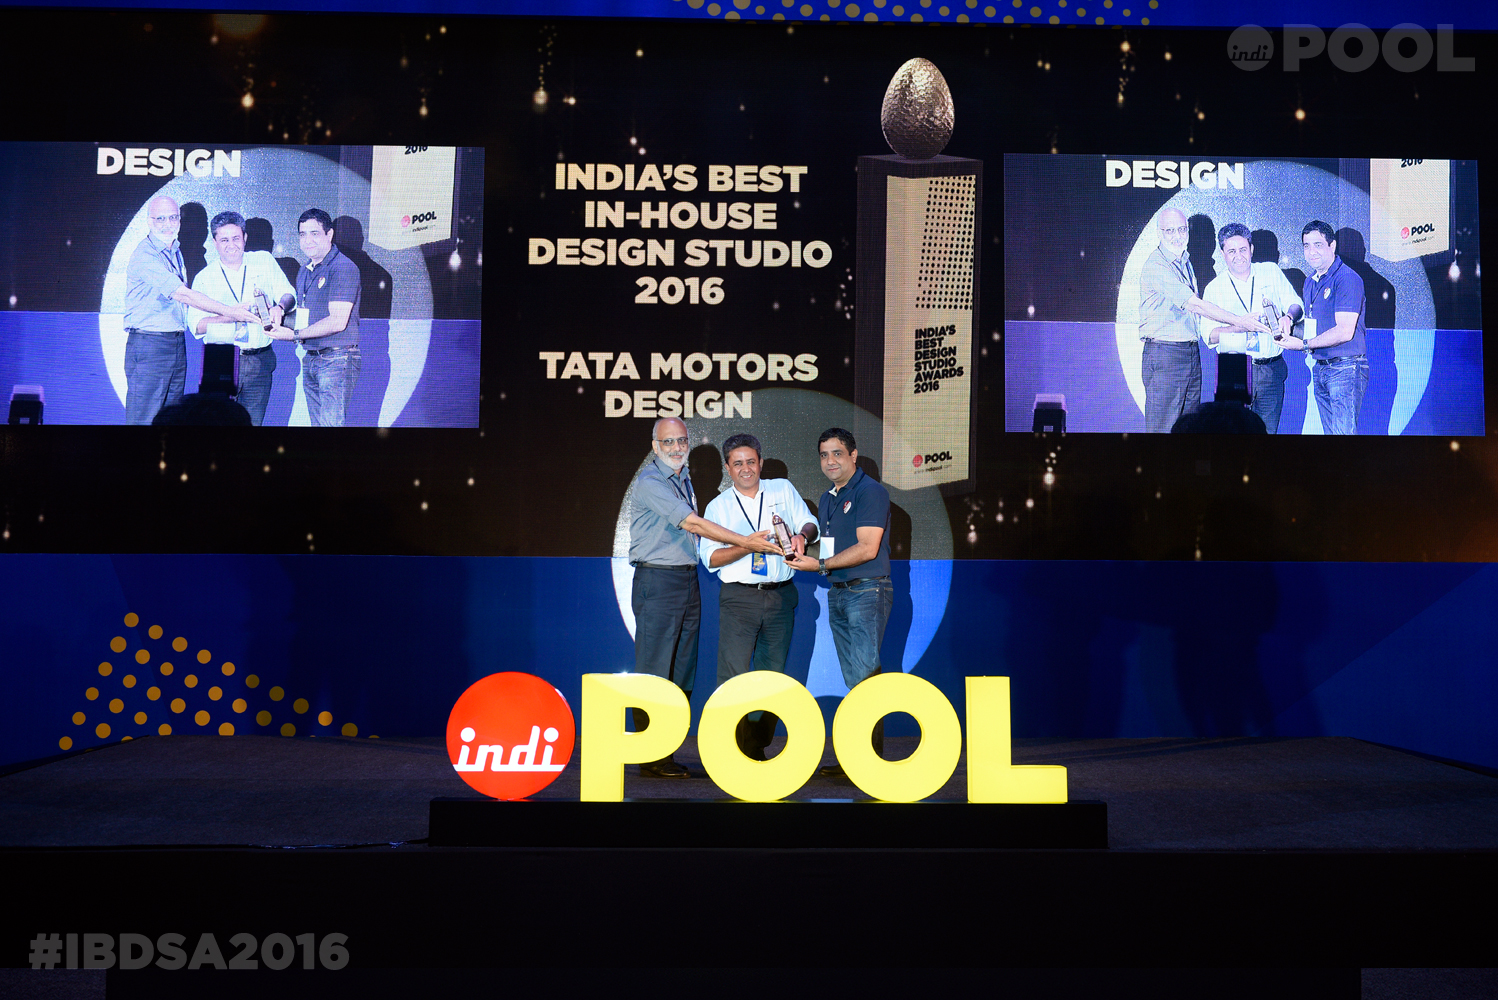 India's Best In-house Design Studio 2016 - Tata Motors